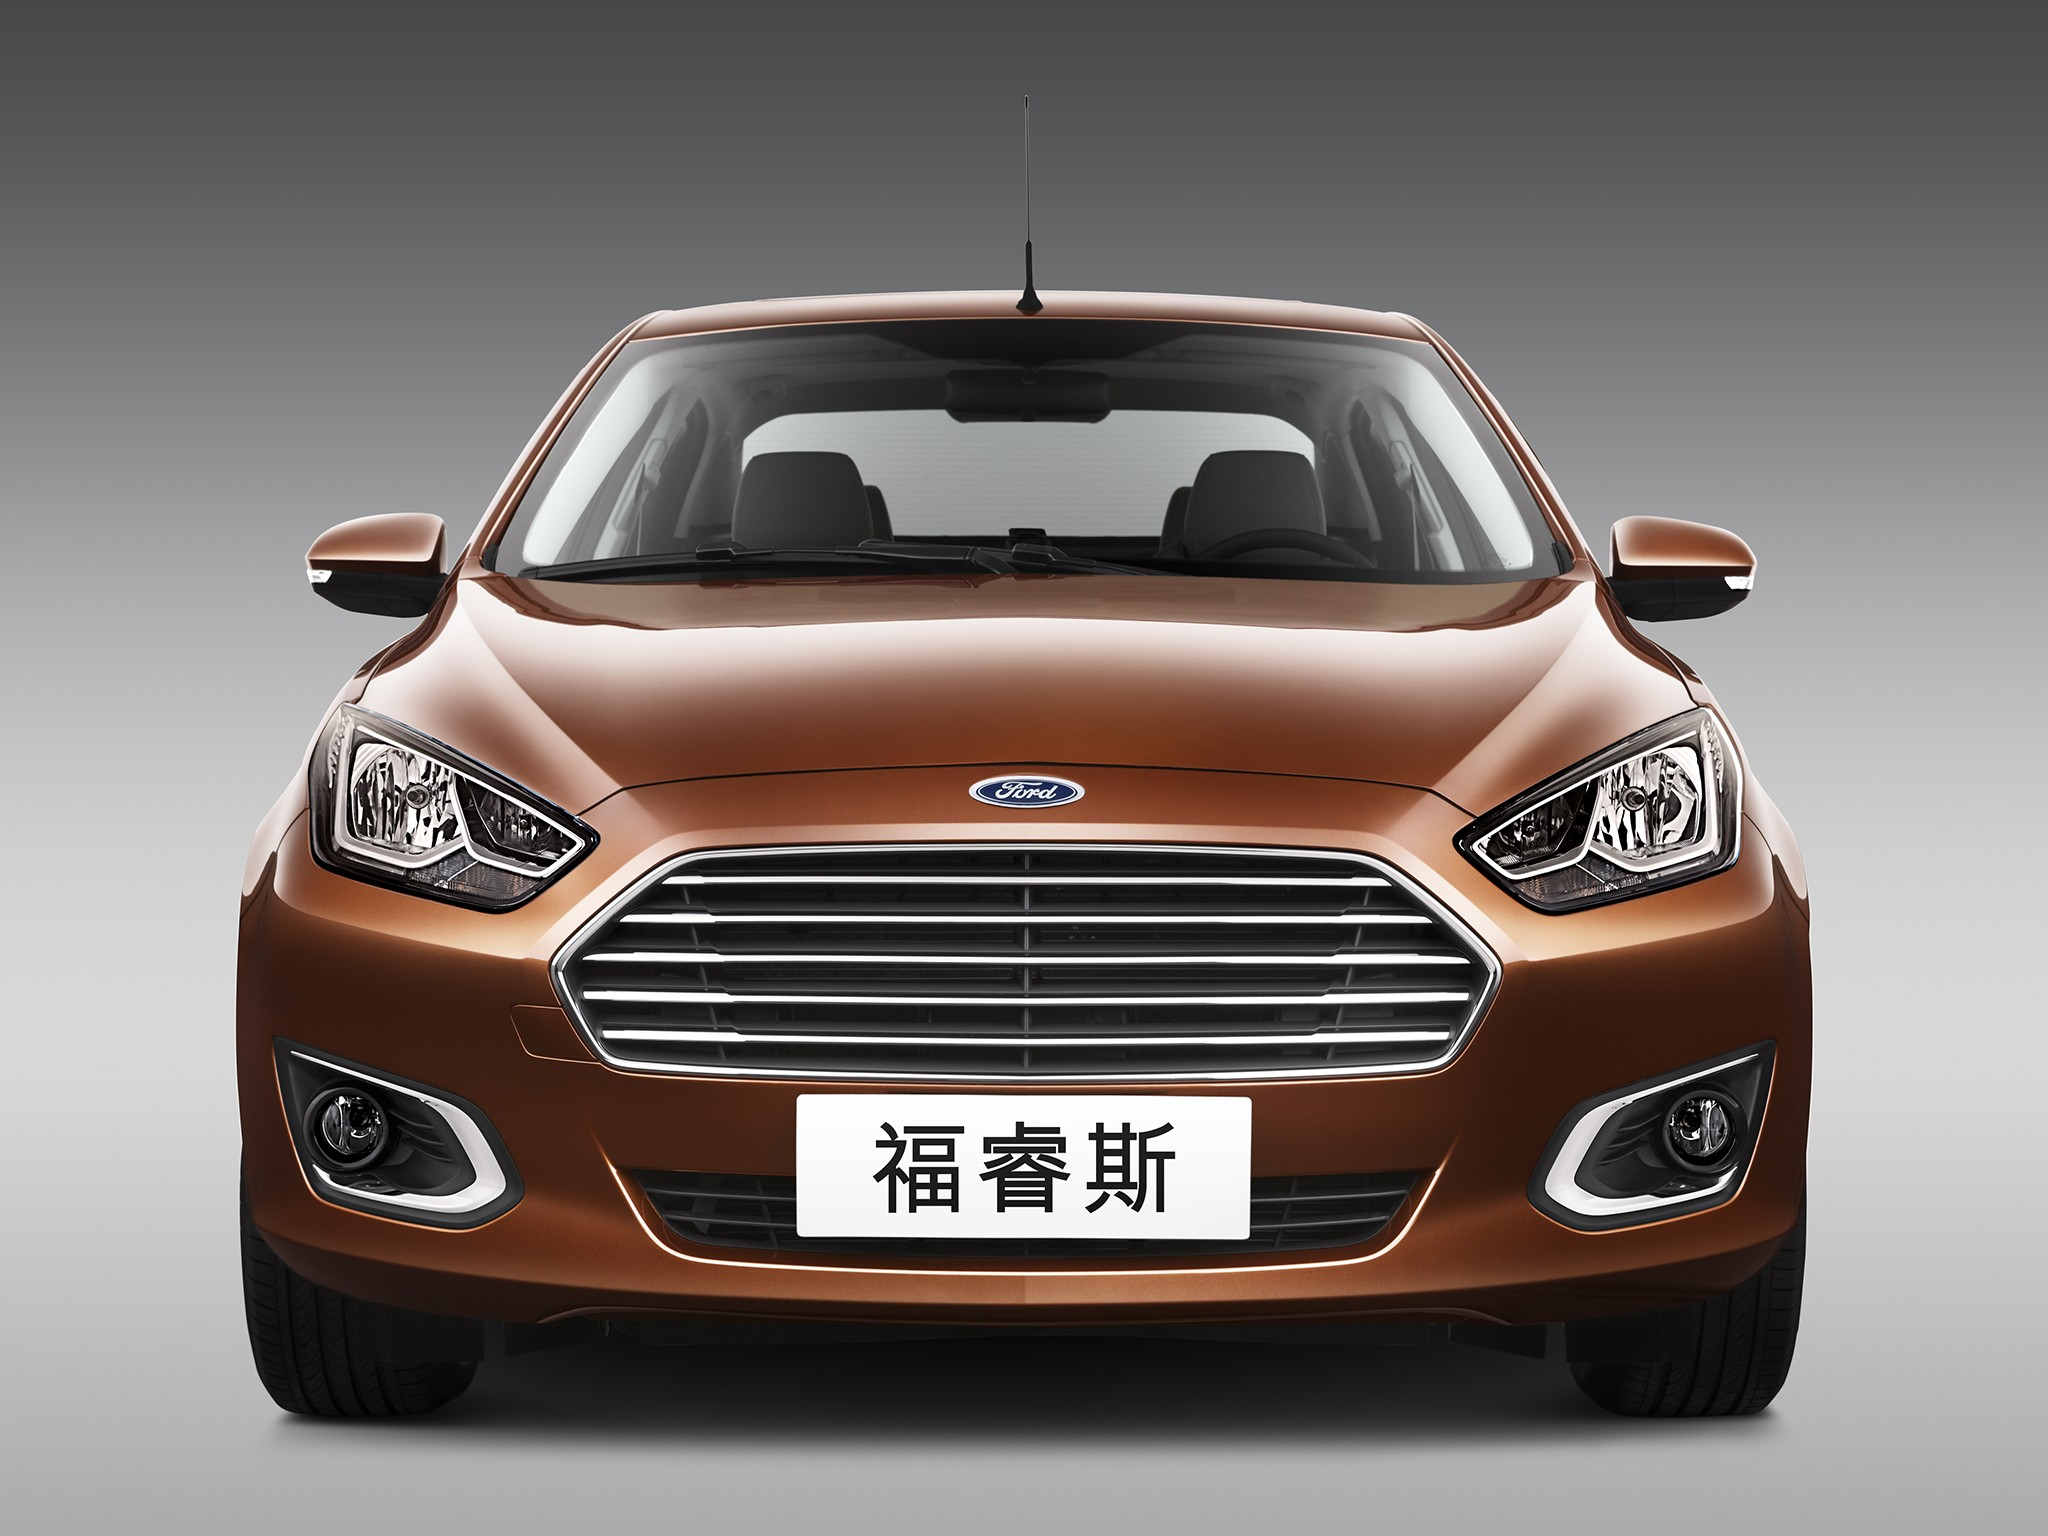 2015 Ford Escort Boosts China Sales Almost 20% in January ...